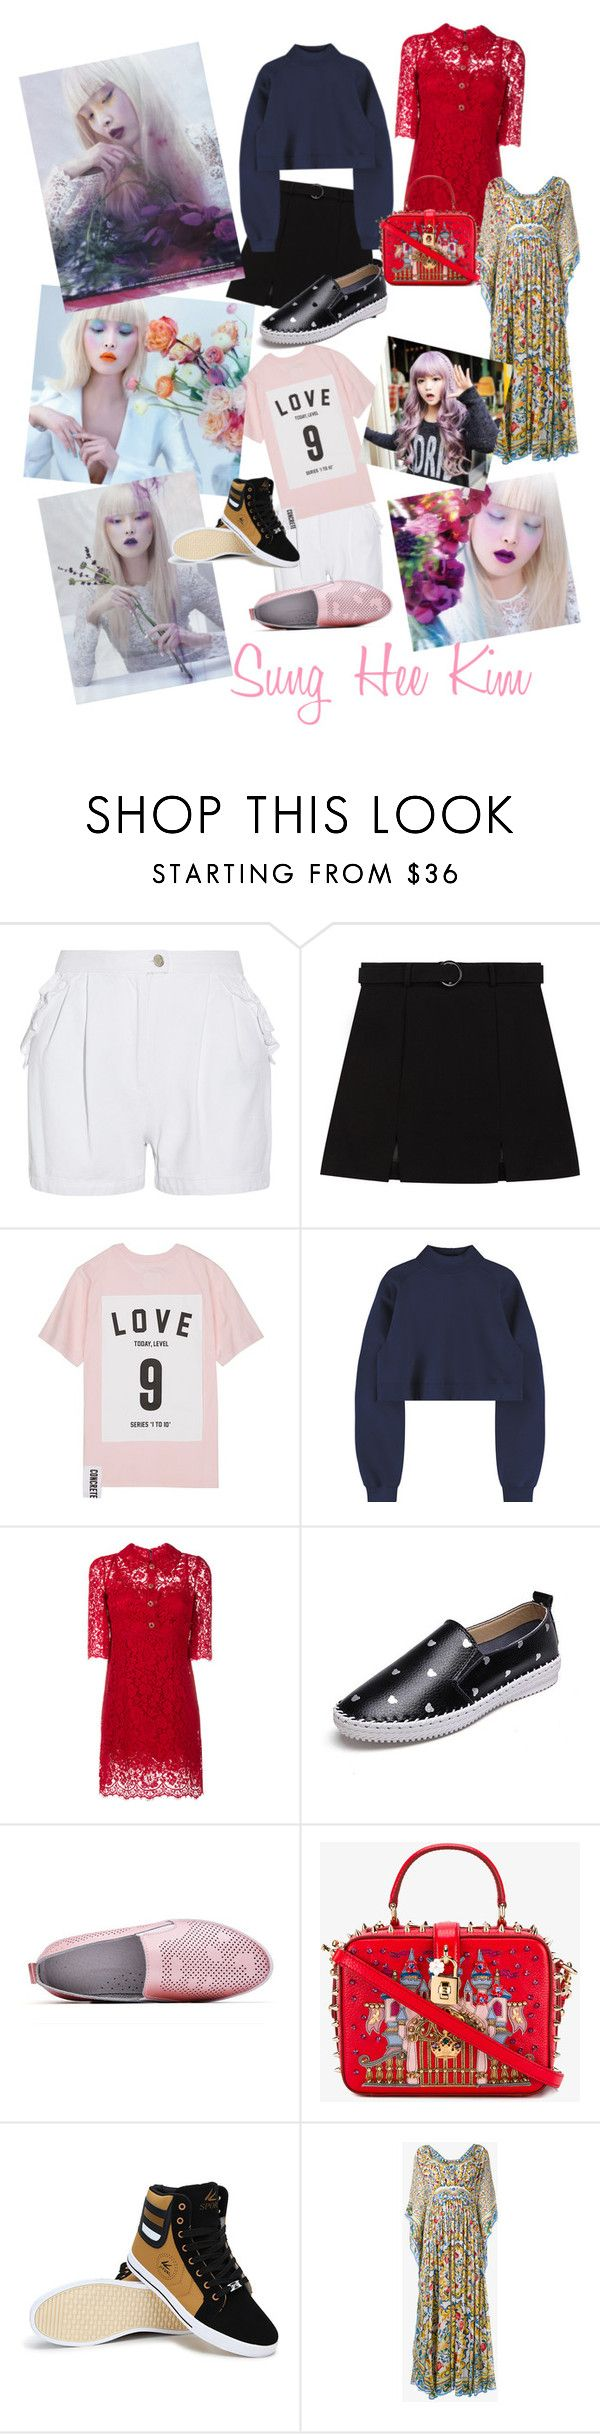 """Korean Inspired- Sung Hee Kim"" by maryann-bunt-deile ❤ liked on Polyvore featuring Steve J & Yoni P, Studio Concrete, Dolce&Gabbana and GABALMANIA"